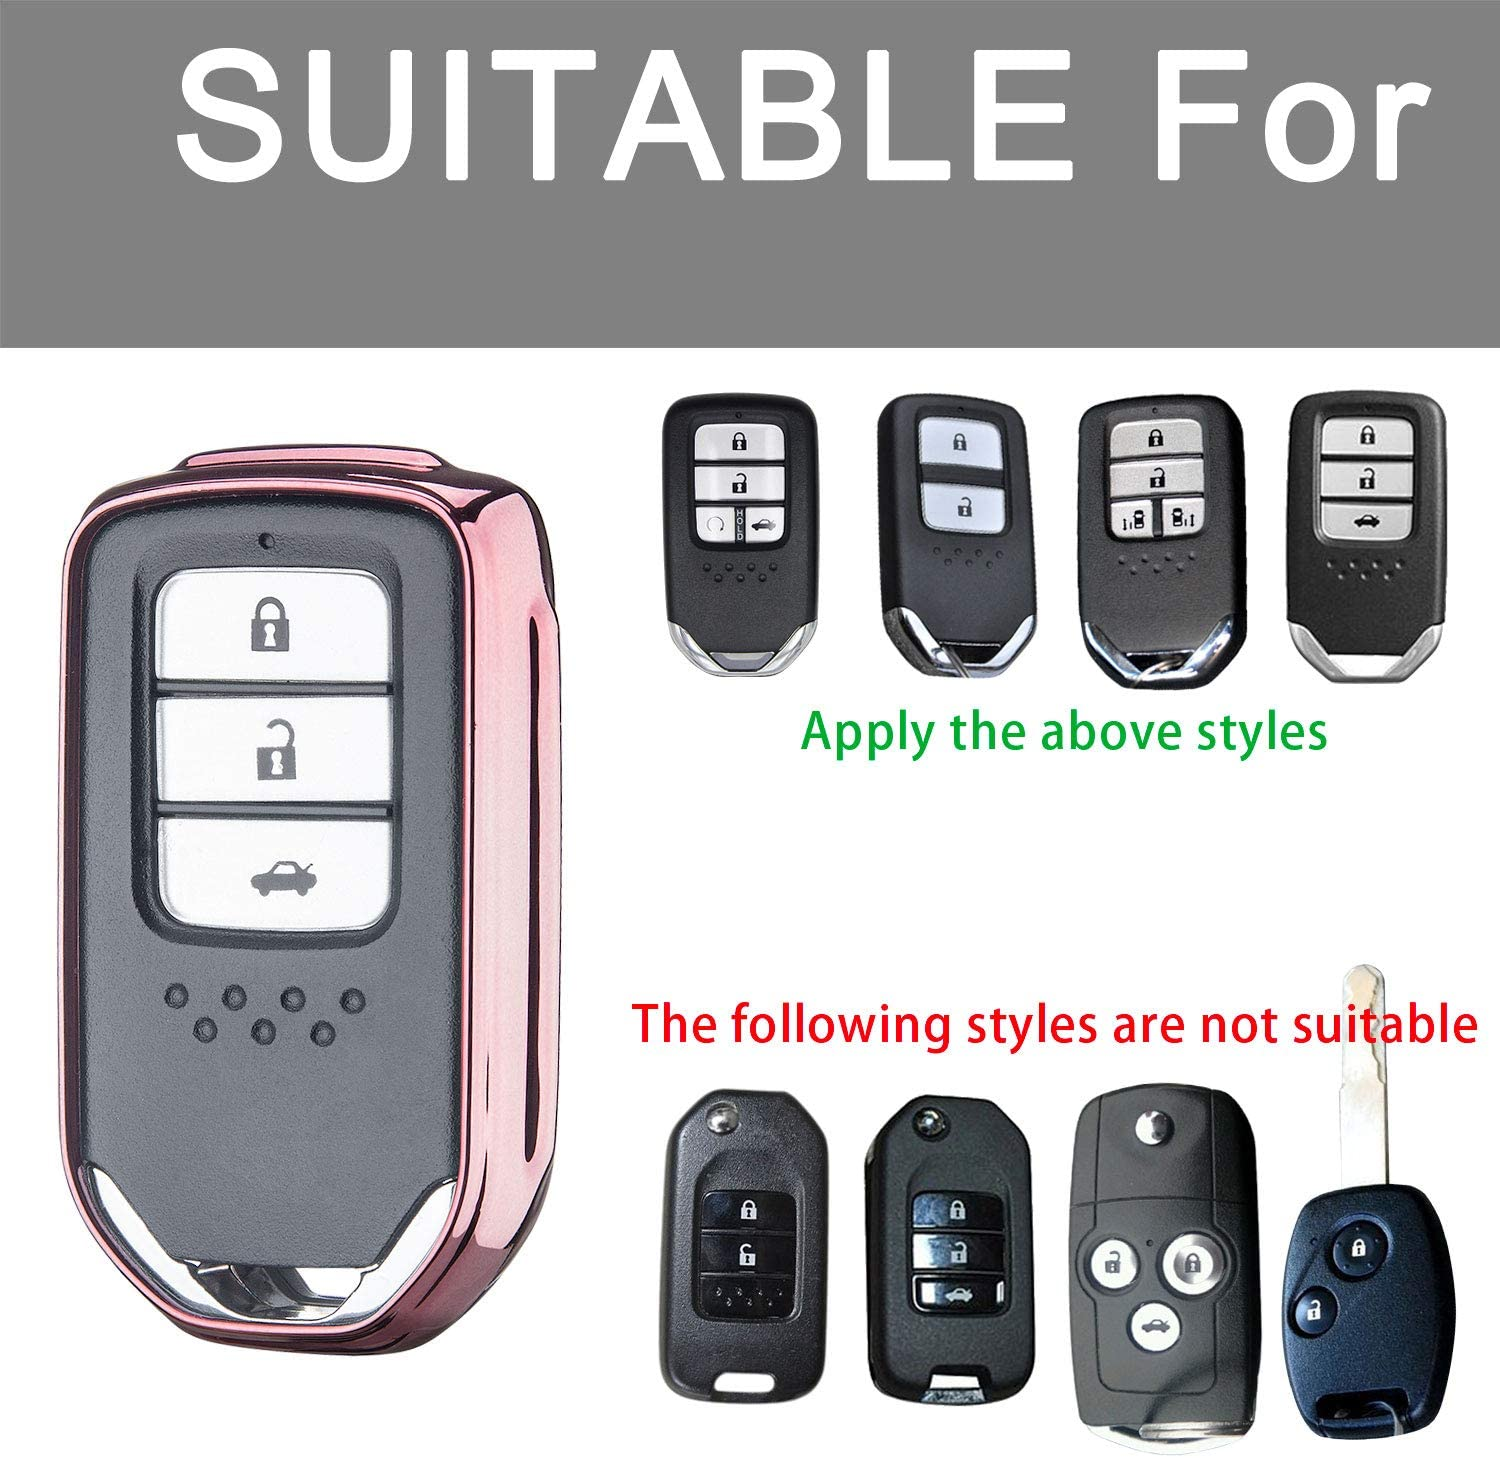 Silver Key Fob Cover for Honda,Soft TPU Key Fob Case All-Around Protector Plating Shell Fit Keyless Smart Remote Key of Honda Accord Civic CRV Pilot Odyssey Fit HRV Clarity CRZ Ridgeline EX EX-L